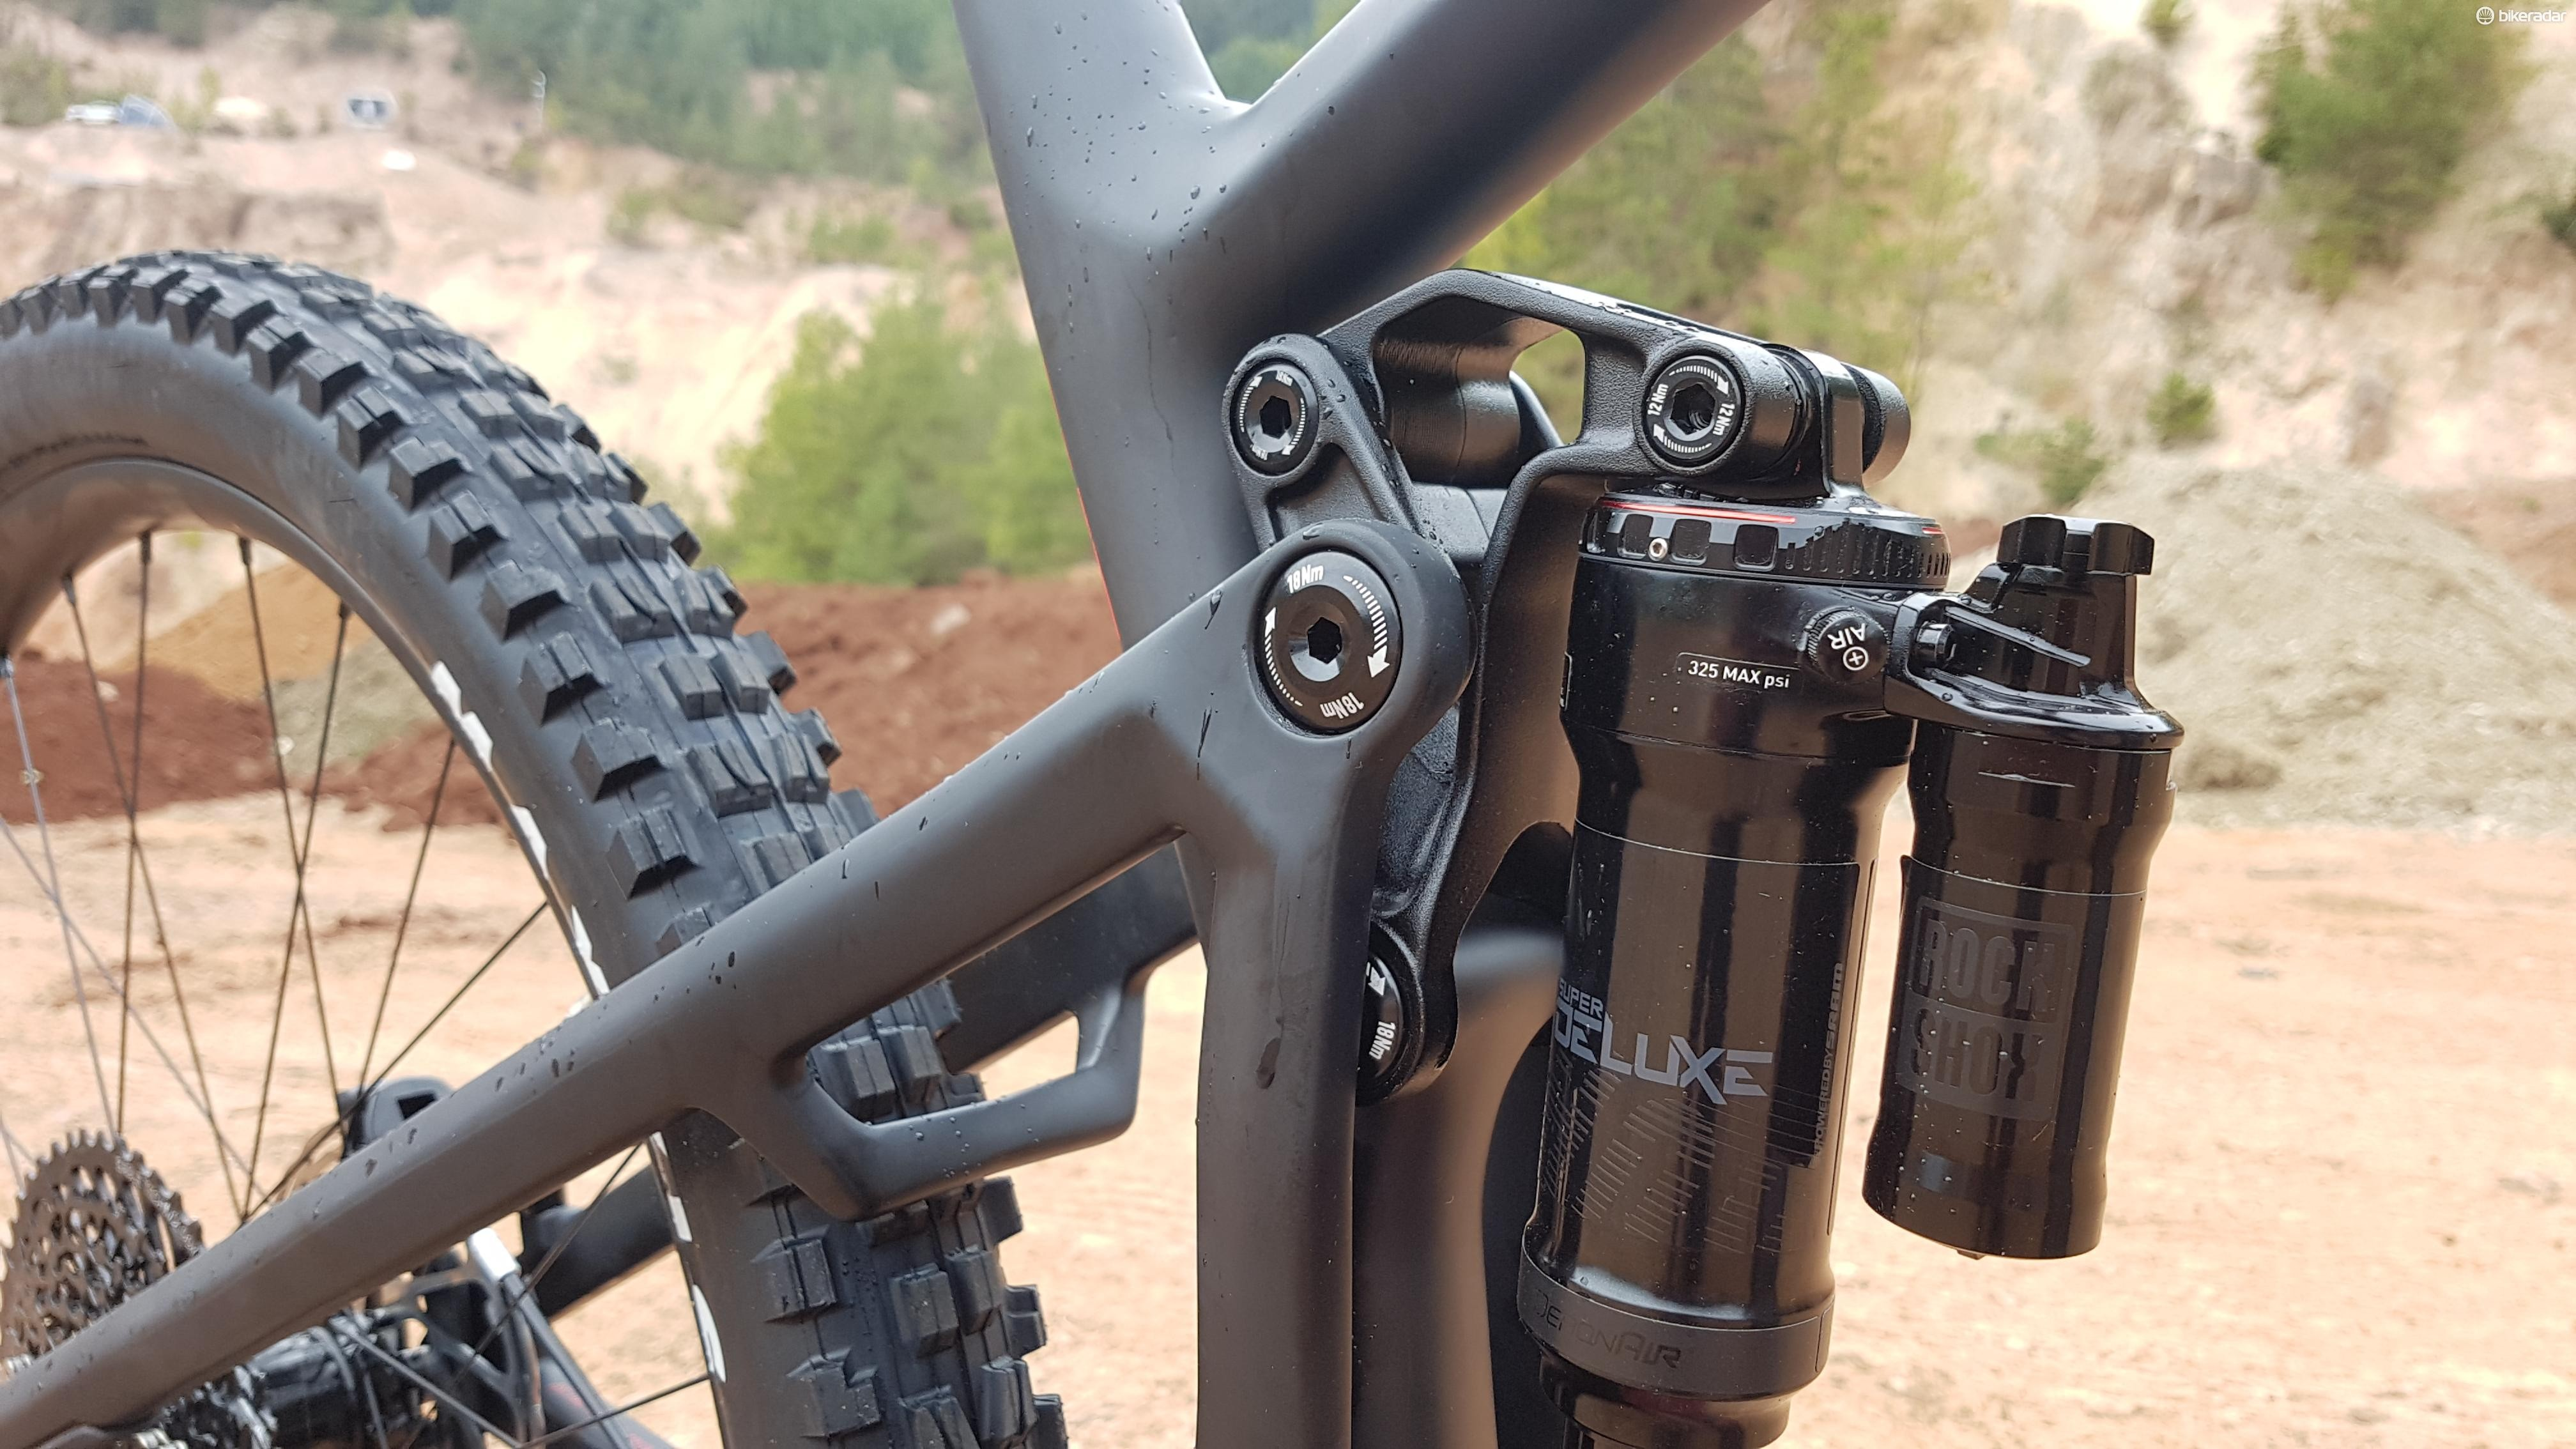 The Main Link and Guide Link are there to manipulate the suspension's kinematic and control the frame's flex